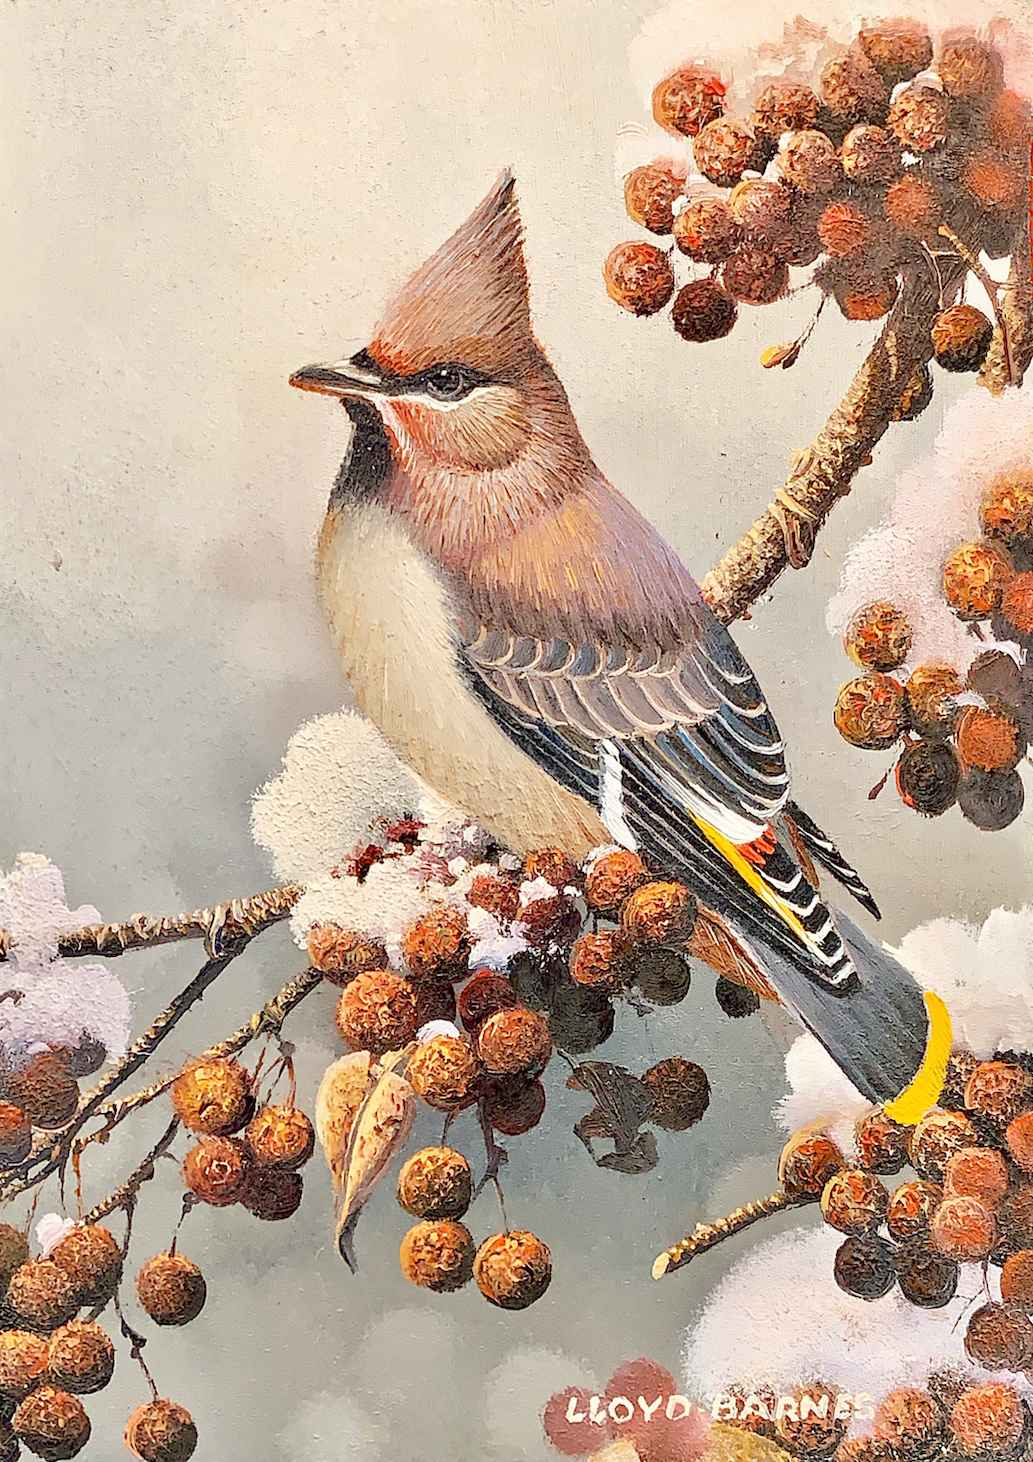 Bohemian Waxwing by  Bob and Lloyd Barnes - Masterpiece Online